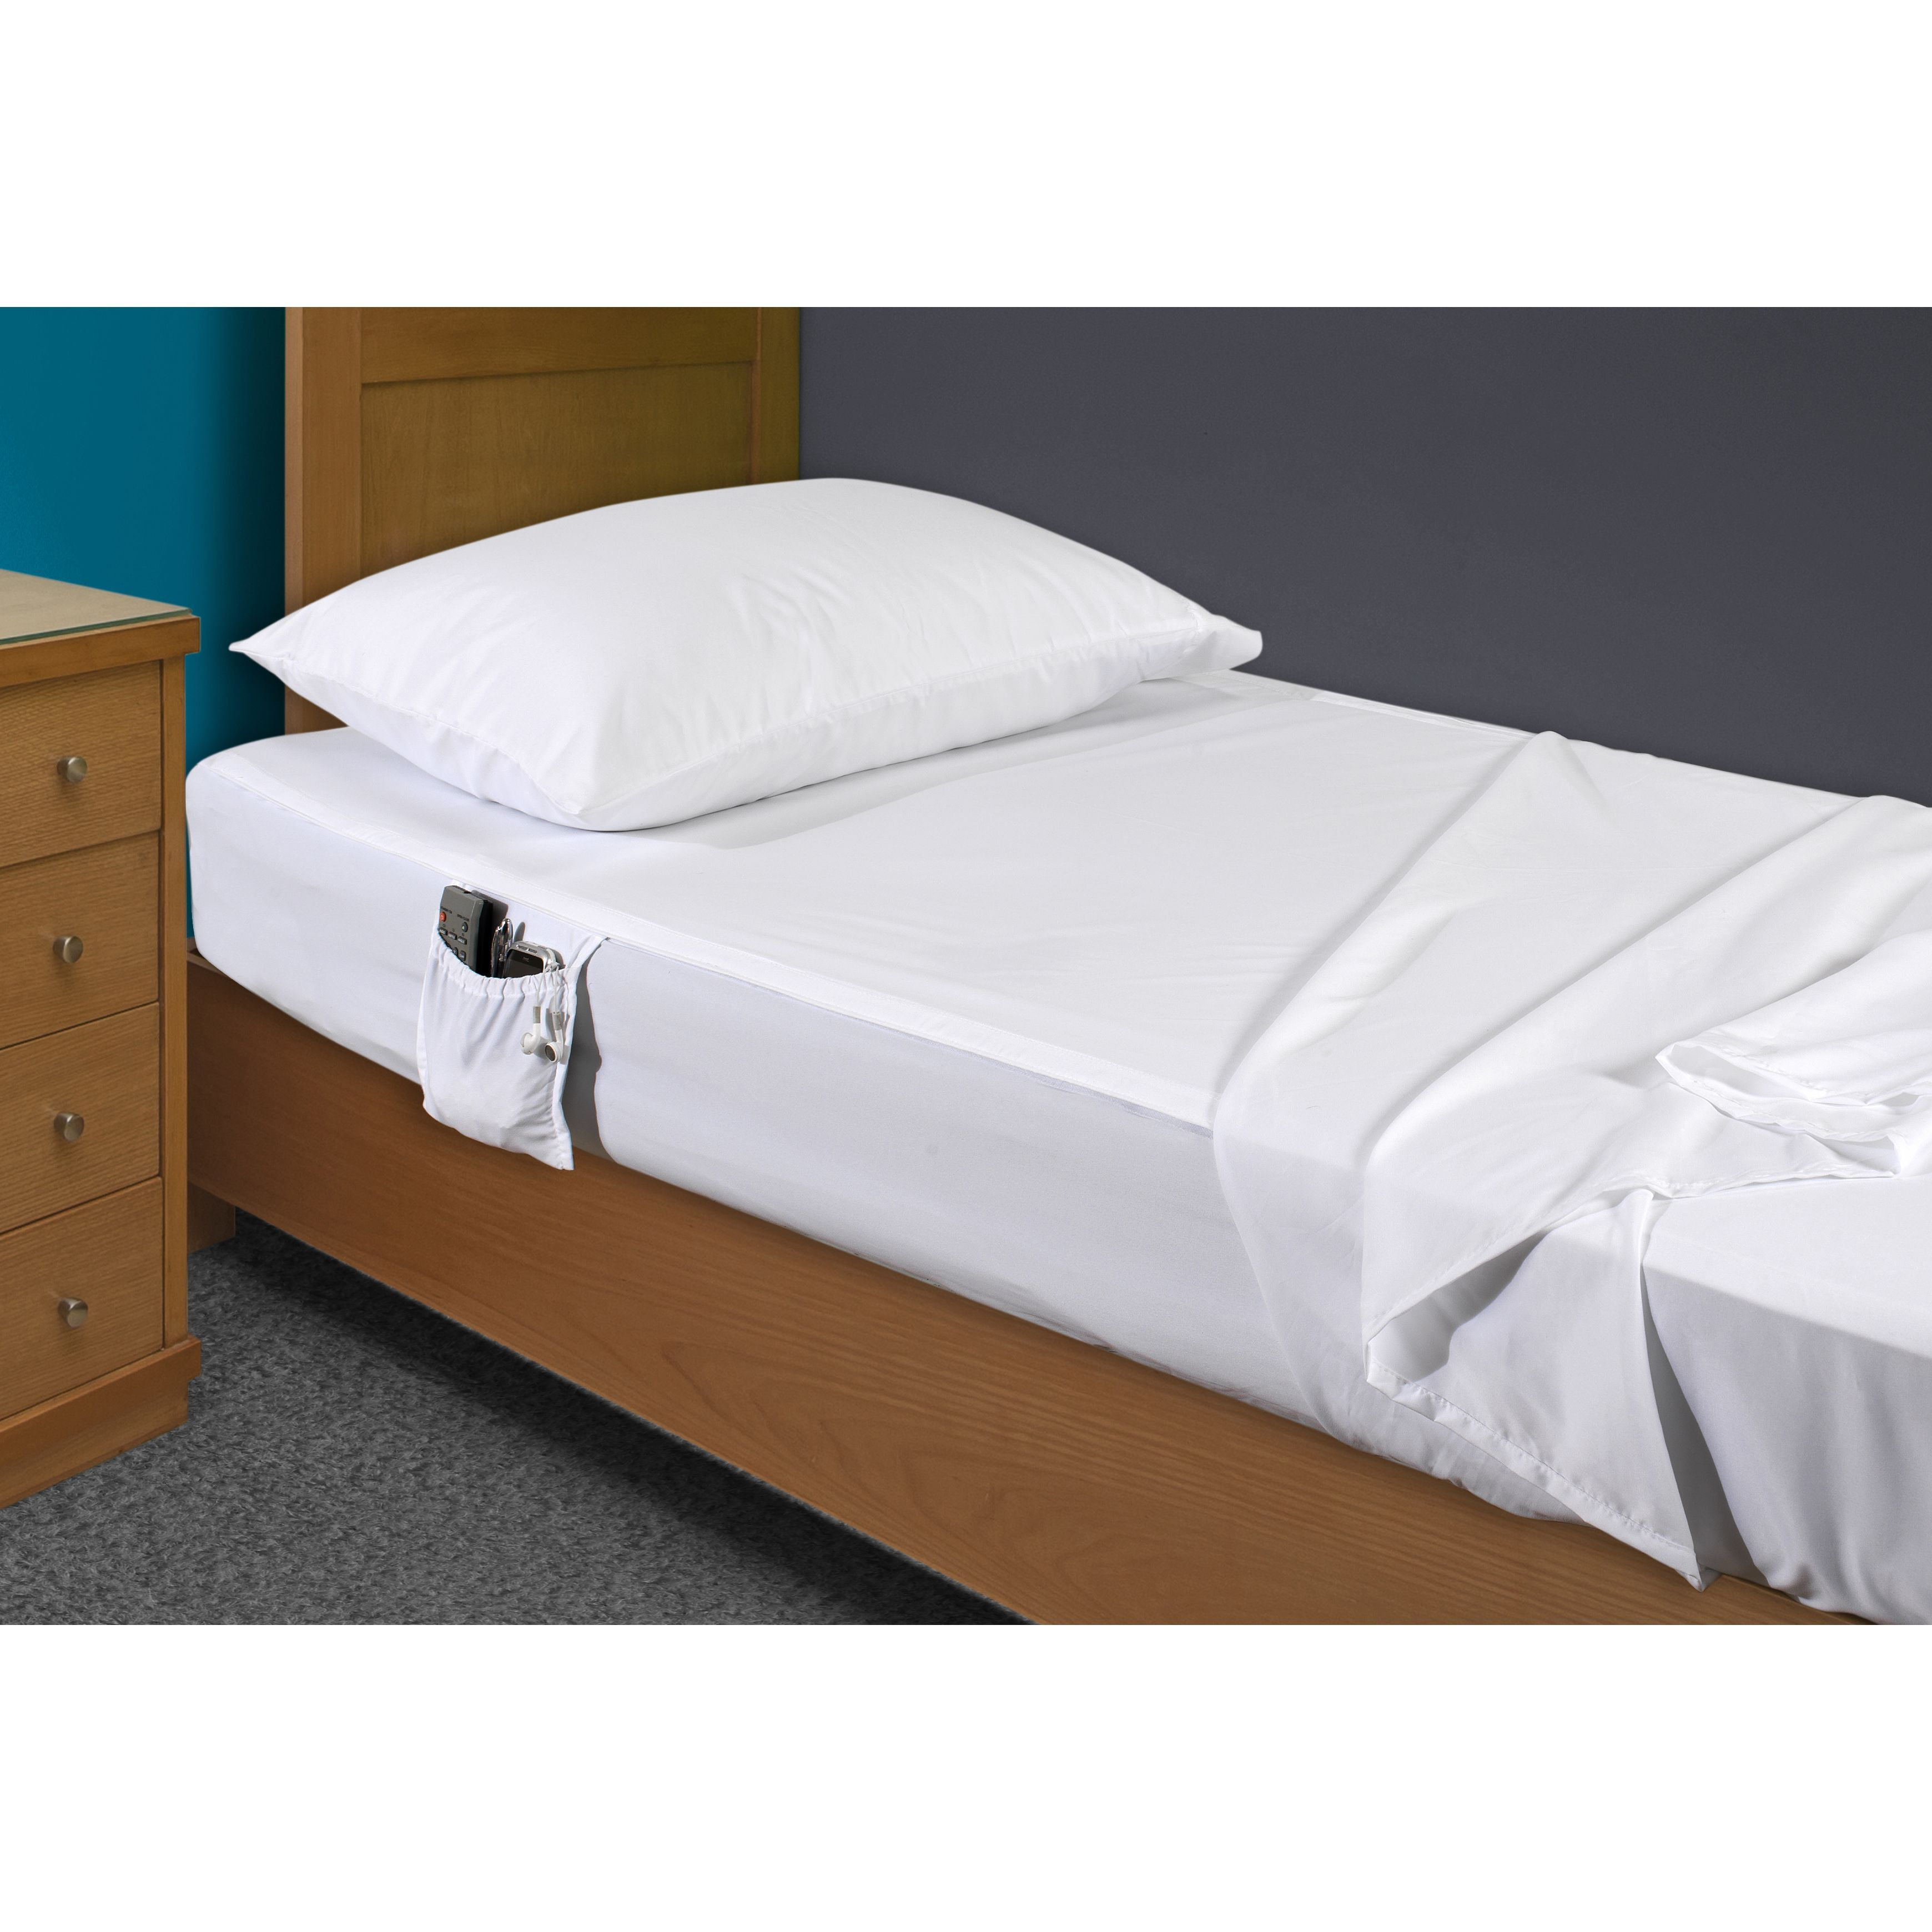 Bed Sheets For Less. Fitted SheetsBed SheetsHospital ...